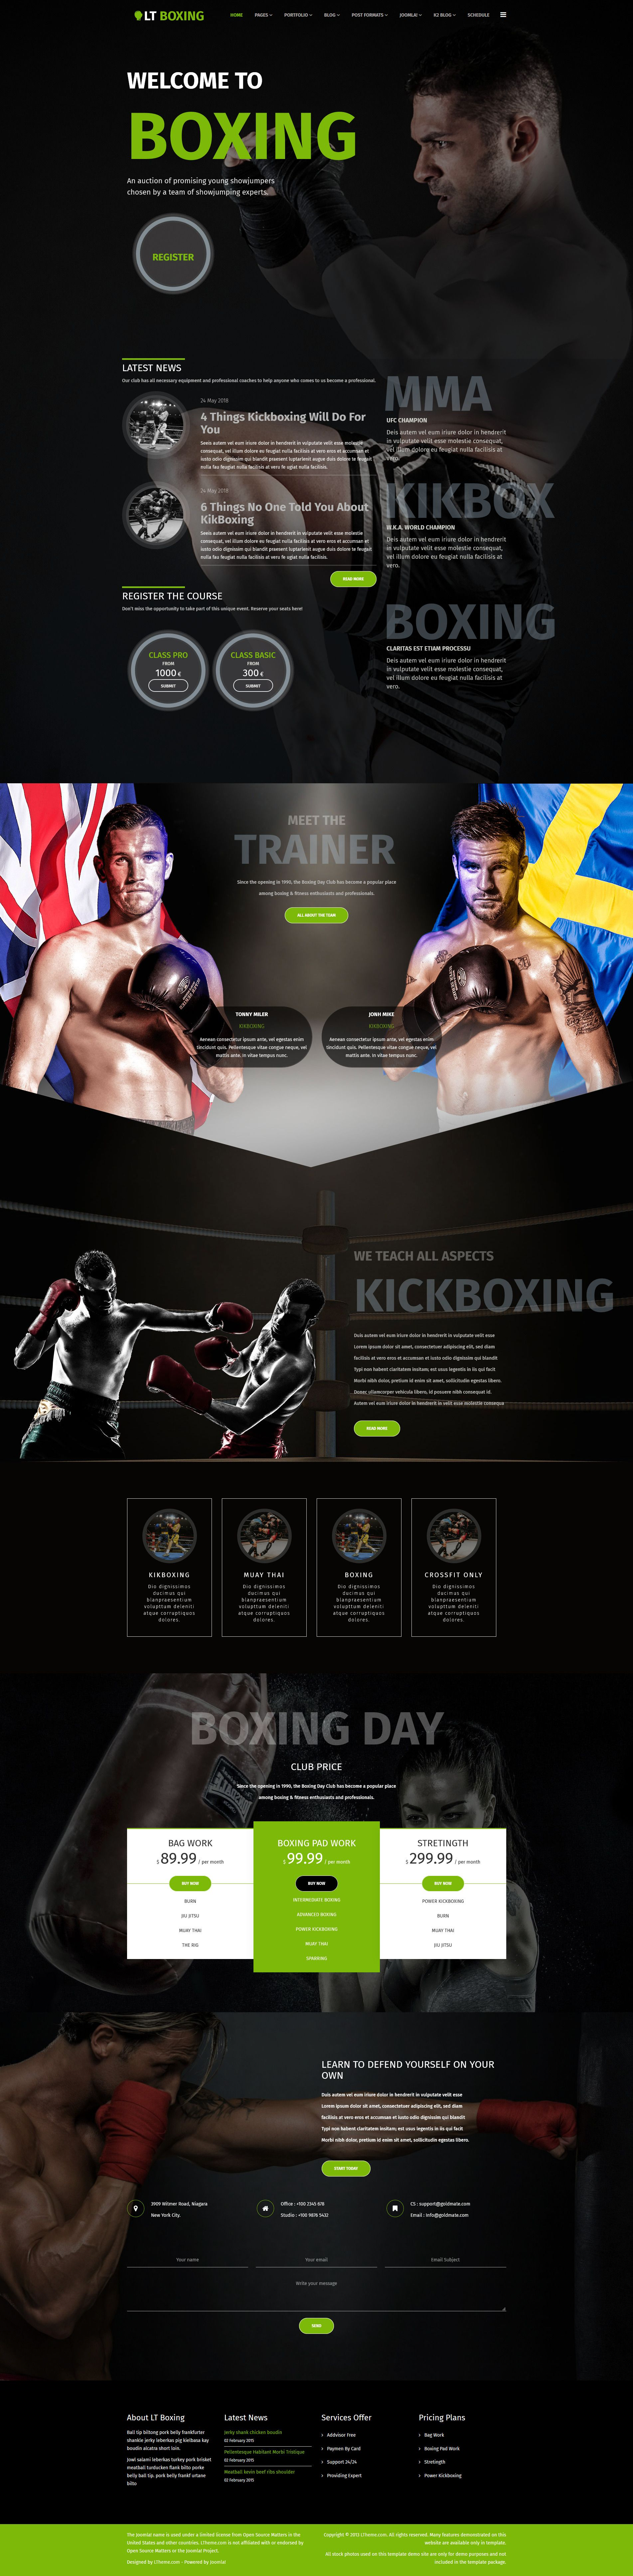 LT Boxing - Premium Joomla Sport Theme Screenshot 1